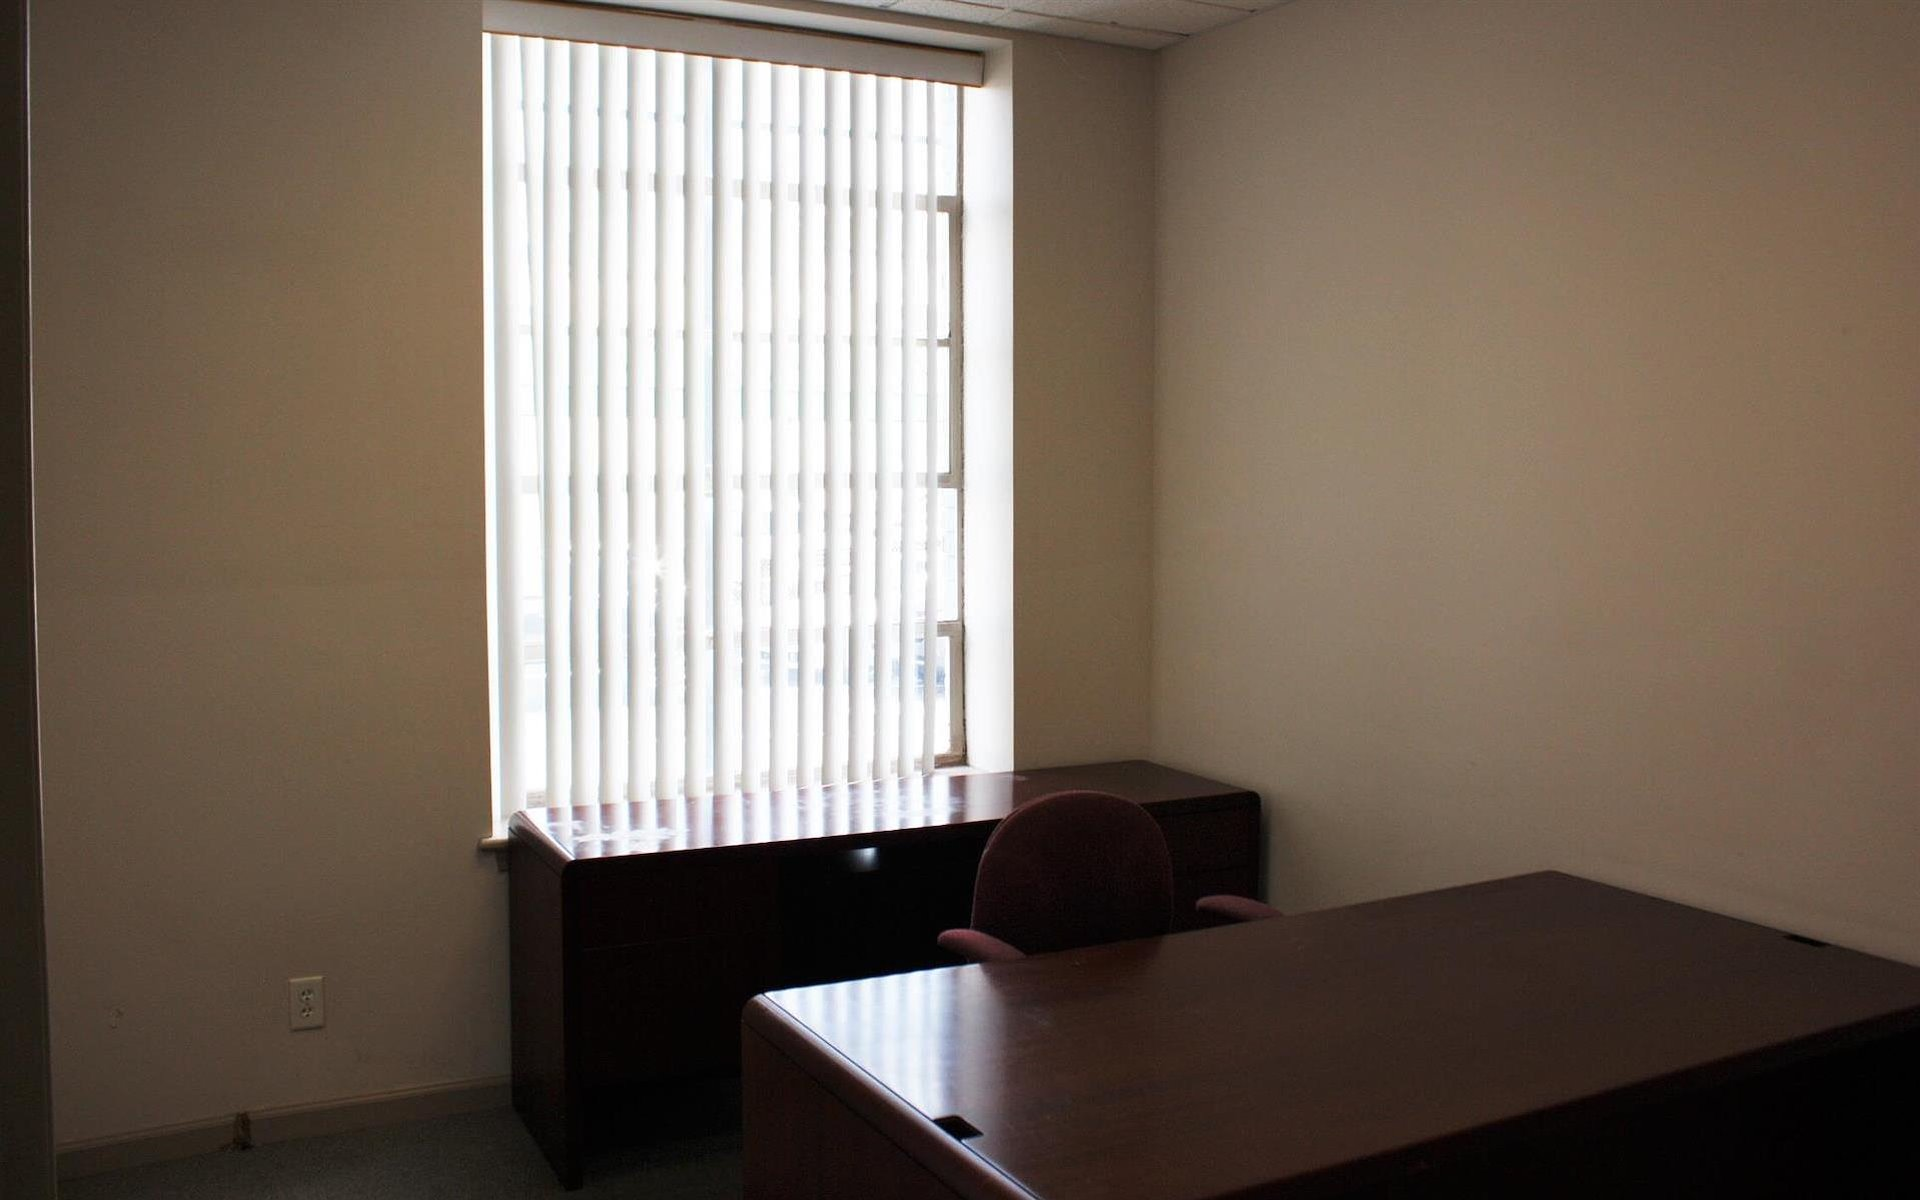 Offices and Coworking in Central NJ - Metuchen, NJ - Suite 106 - Private Office